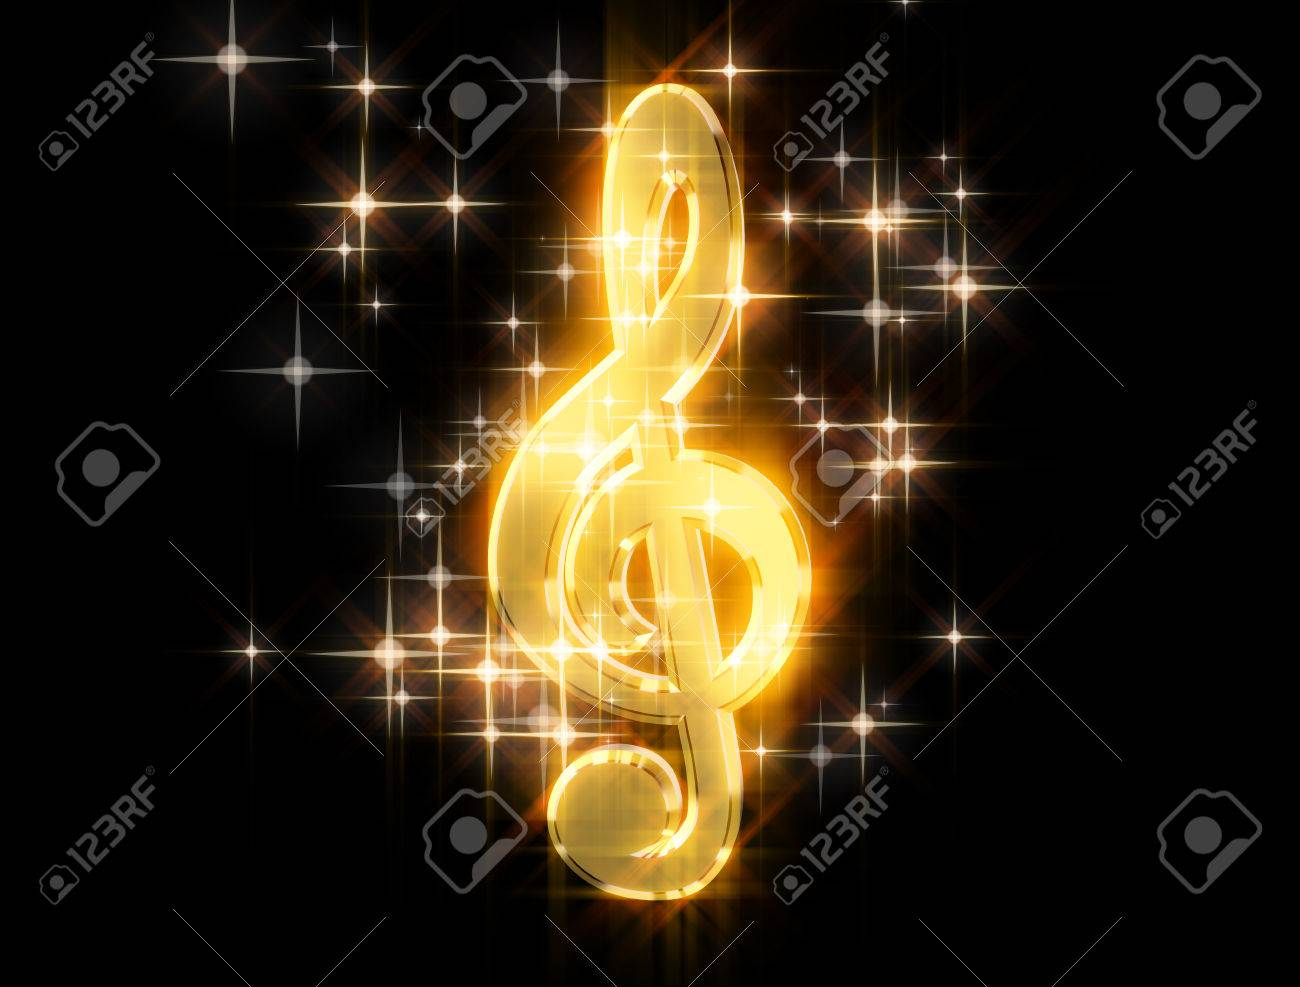 Golden treble clef, surrounded by stars on a black background - 37122103